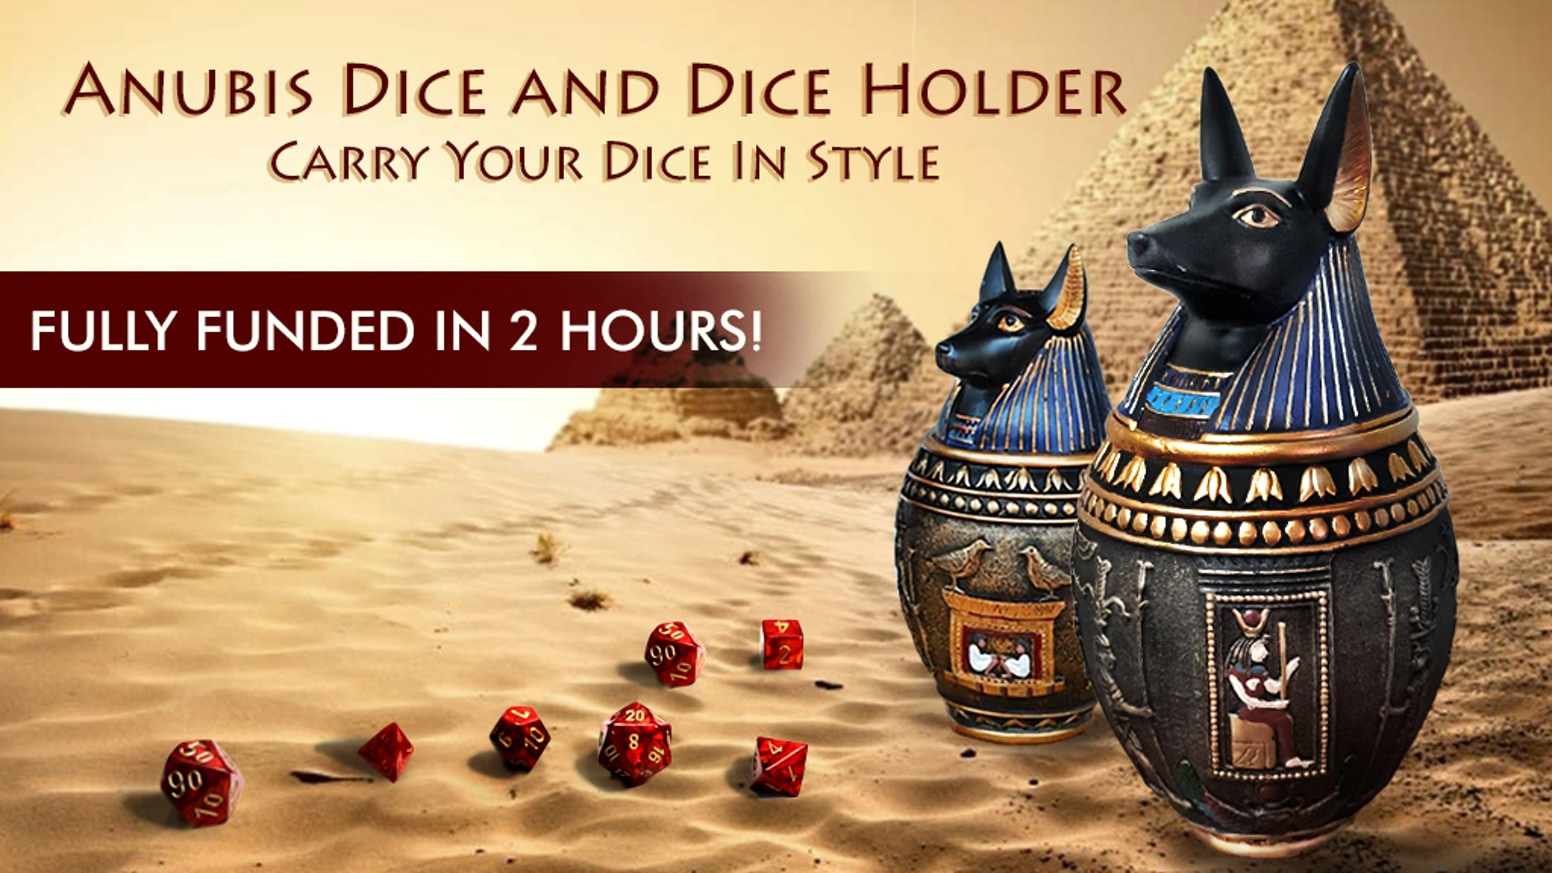 An Anubis Dice Holder and affordable dice sets that will make you roll 20s in style. Bring it to your next Dungeons and Dragons game!